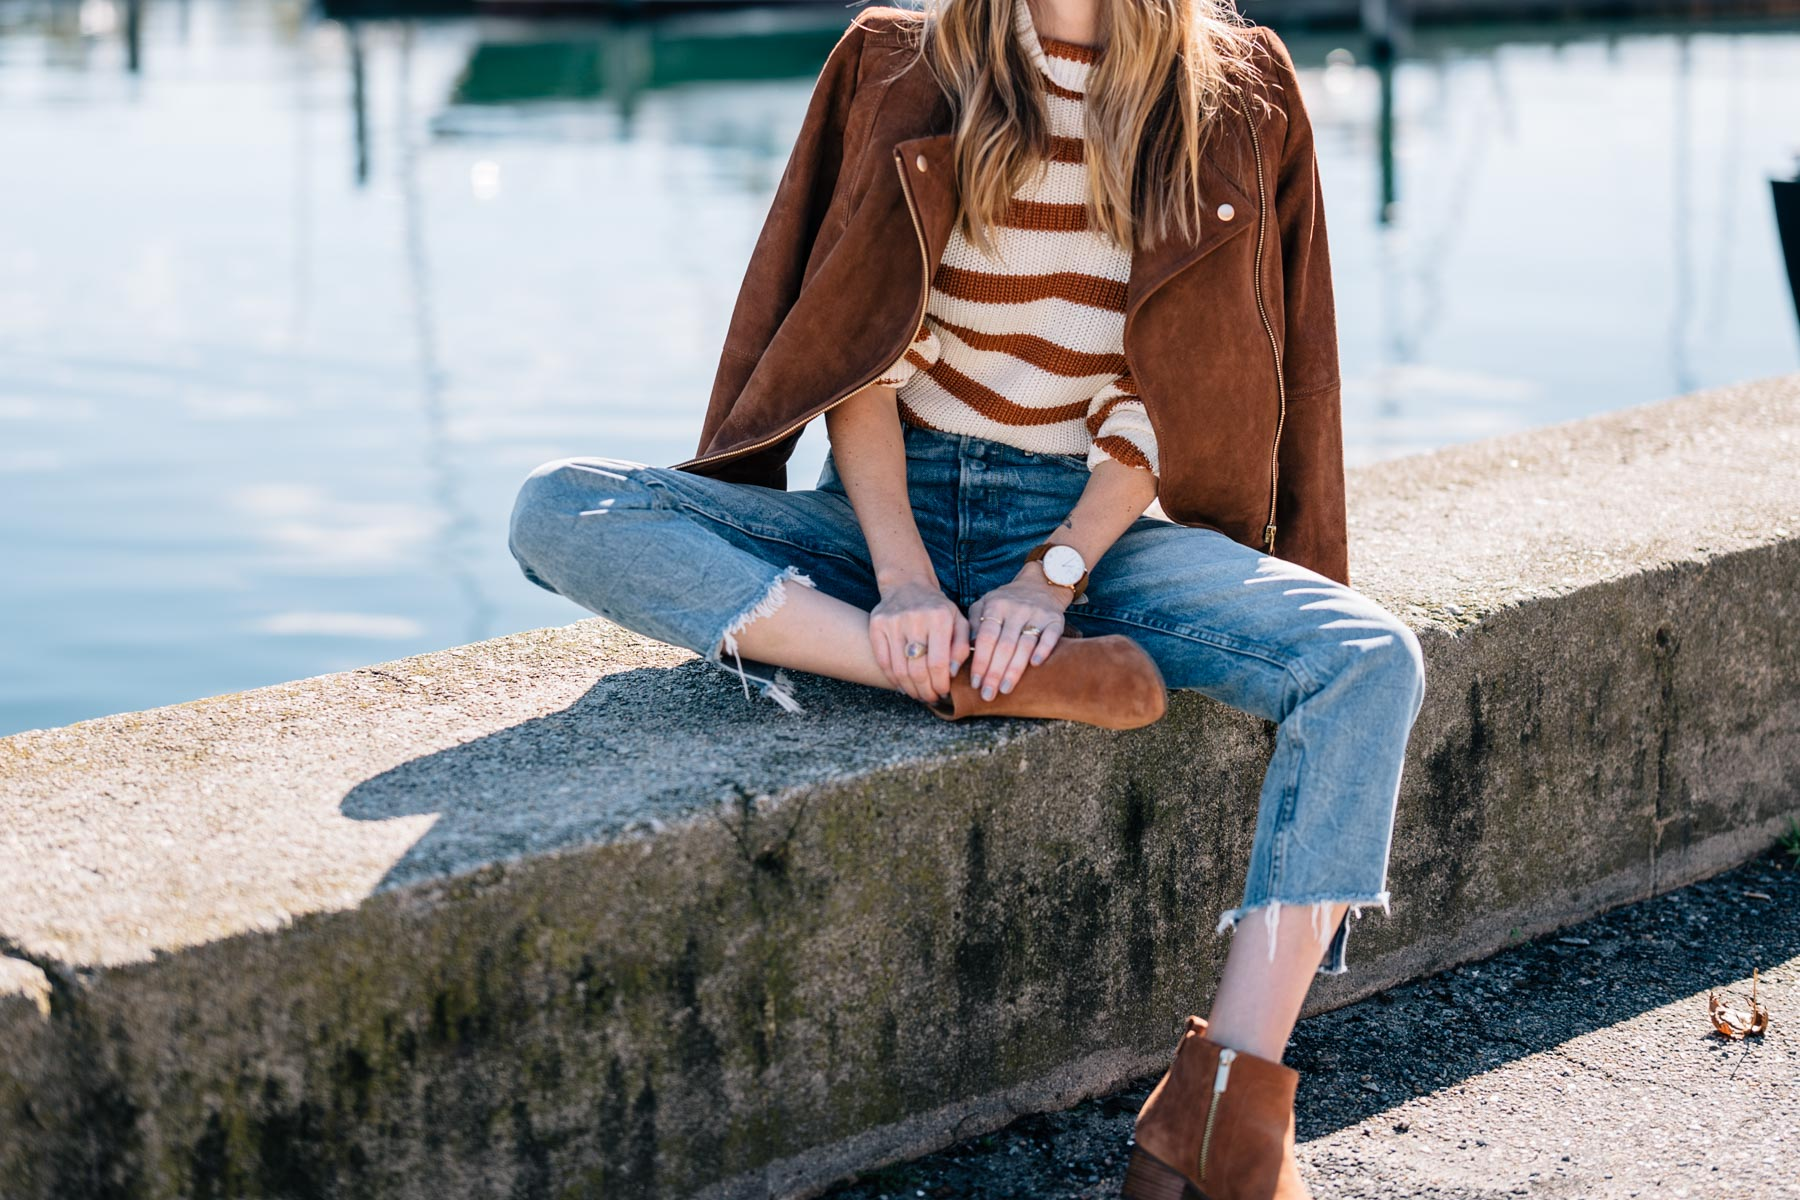 Jess Ann Kirby wearing GRLFRND denim, talbots ankle boots and a suede moto jacket